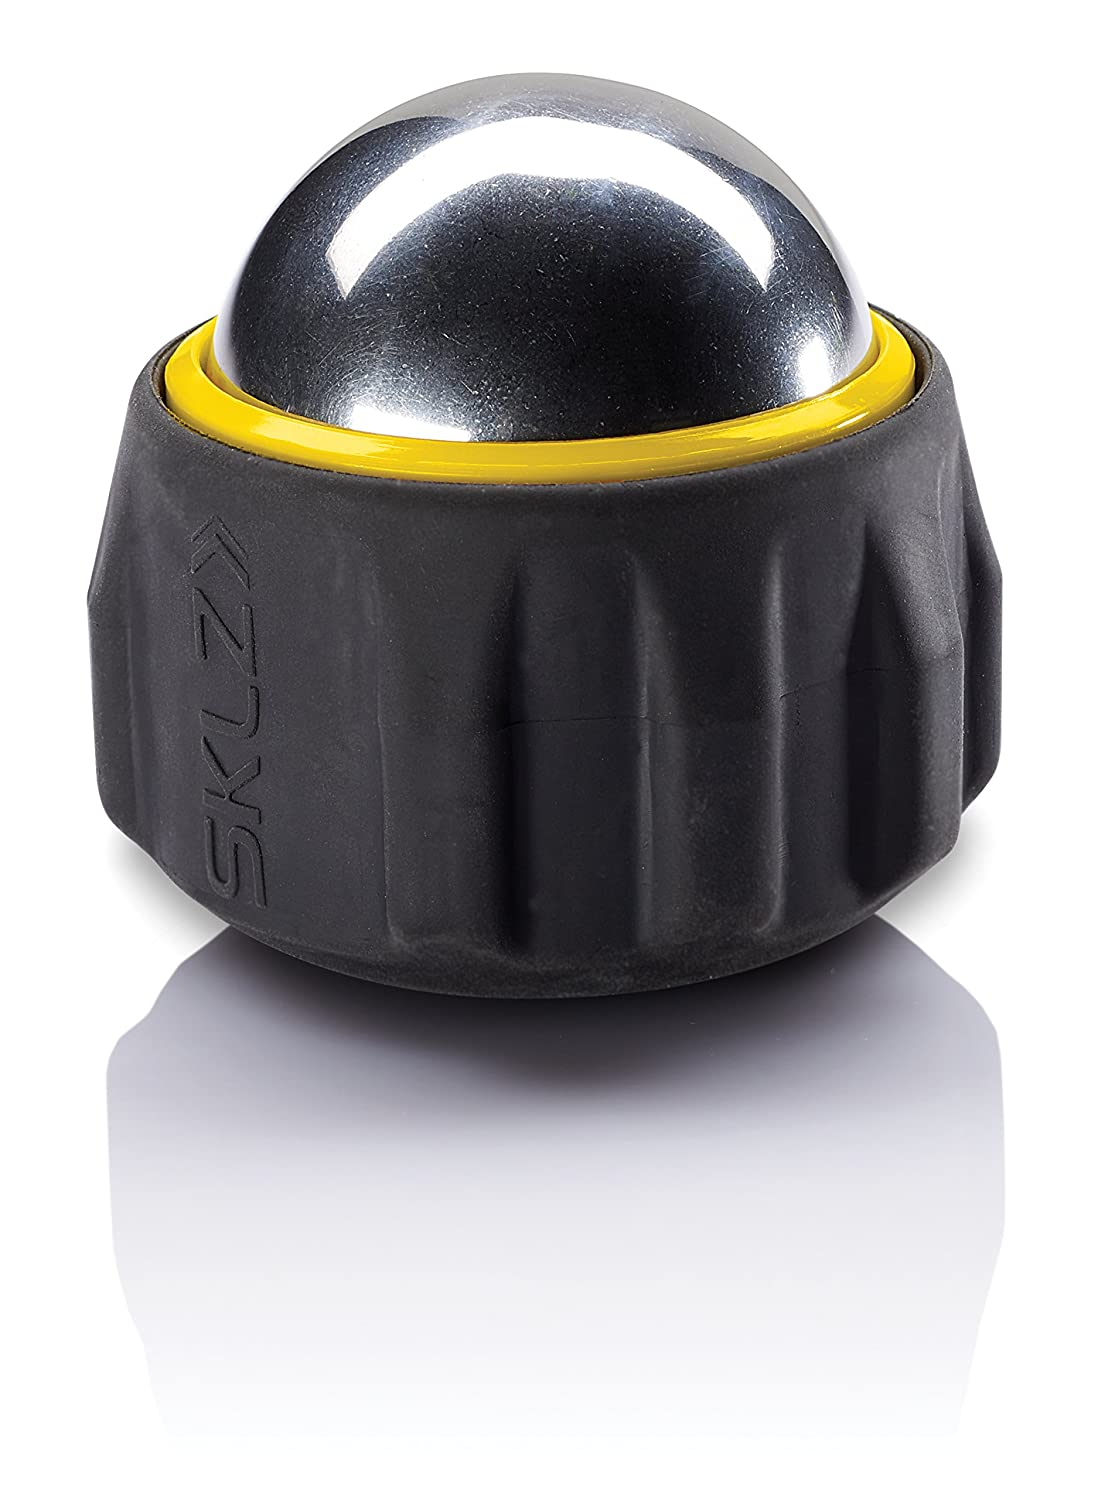 Sklz Cold Roller Massage Ball - Black: Amazon.co.uk: Sports & Outdoors